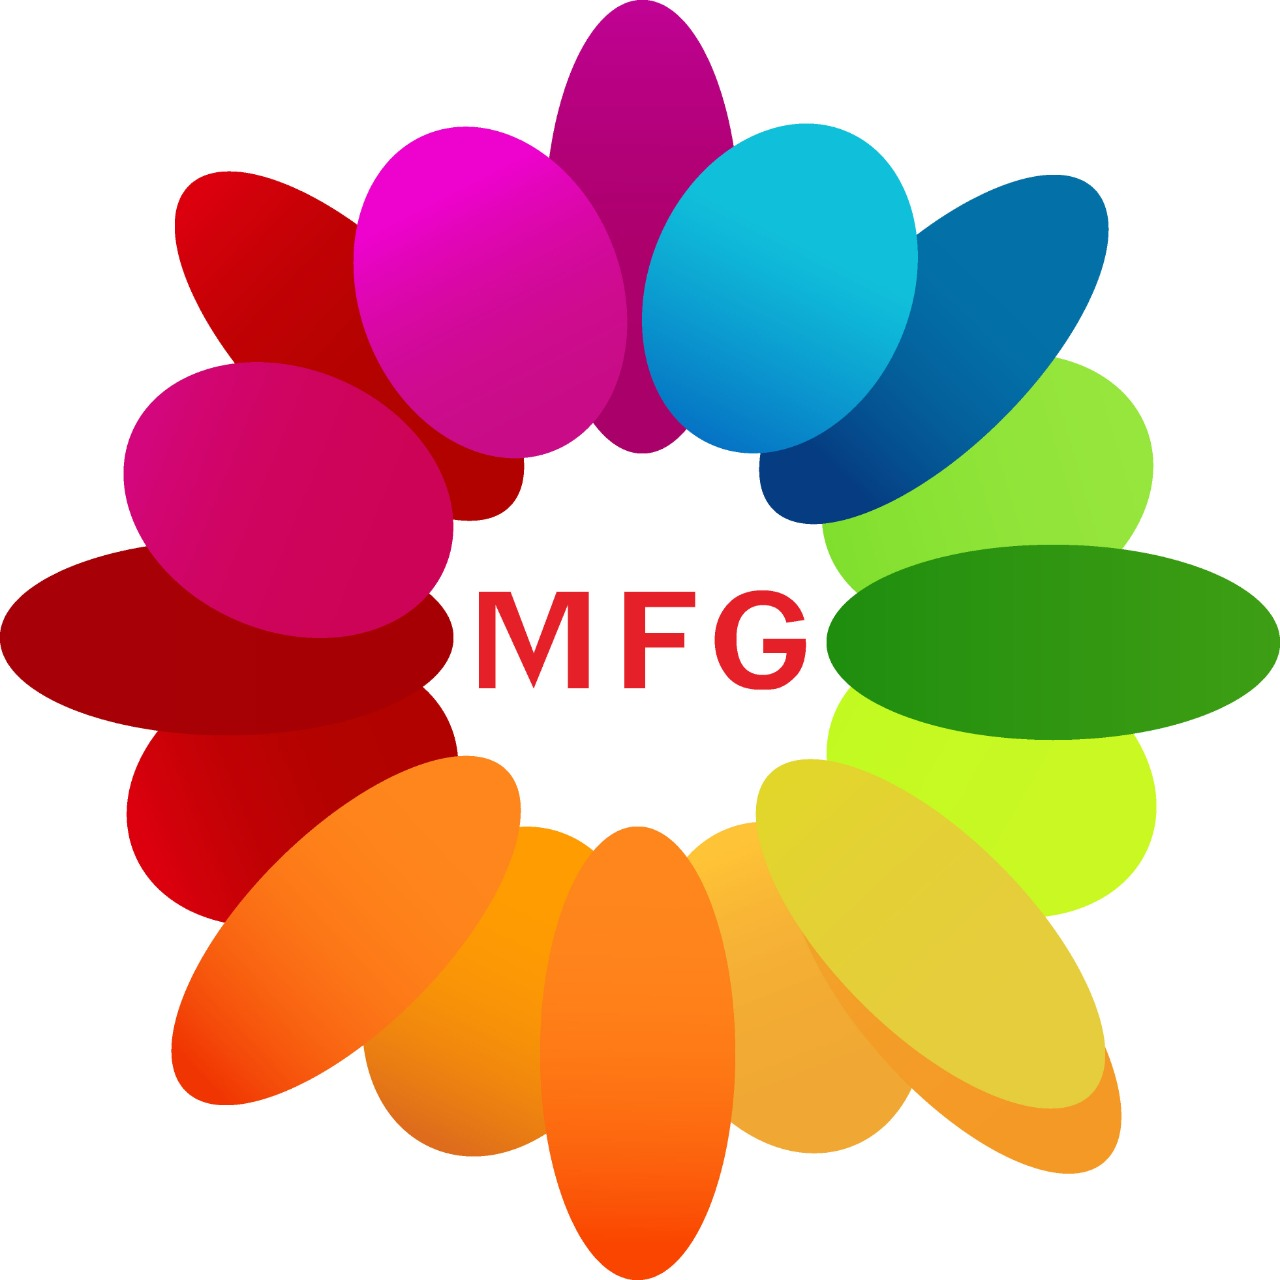 Bunch of lavender orchids with 1 feet height white teddy bear